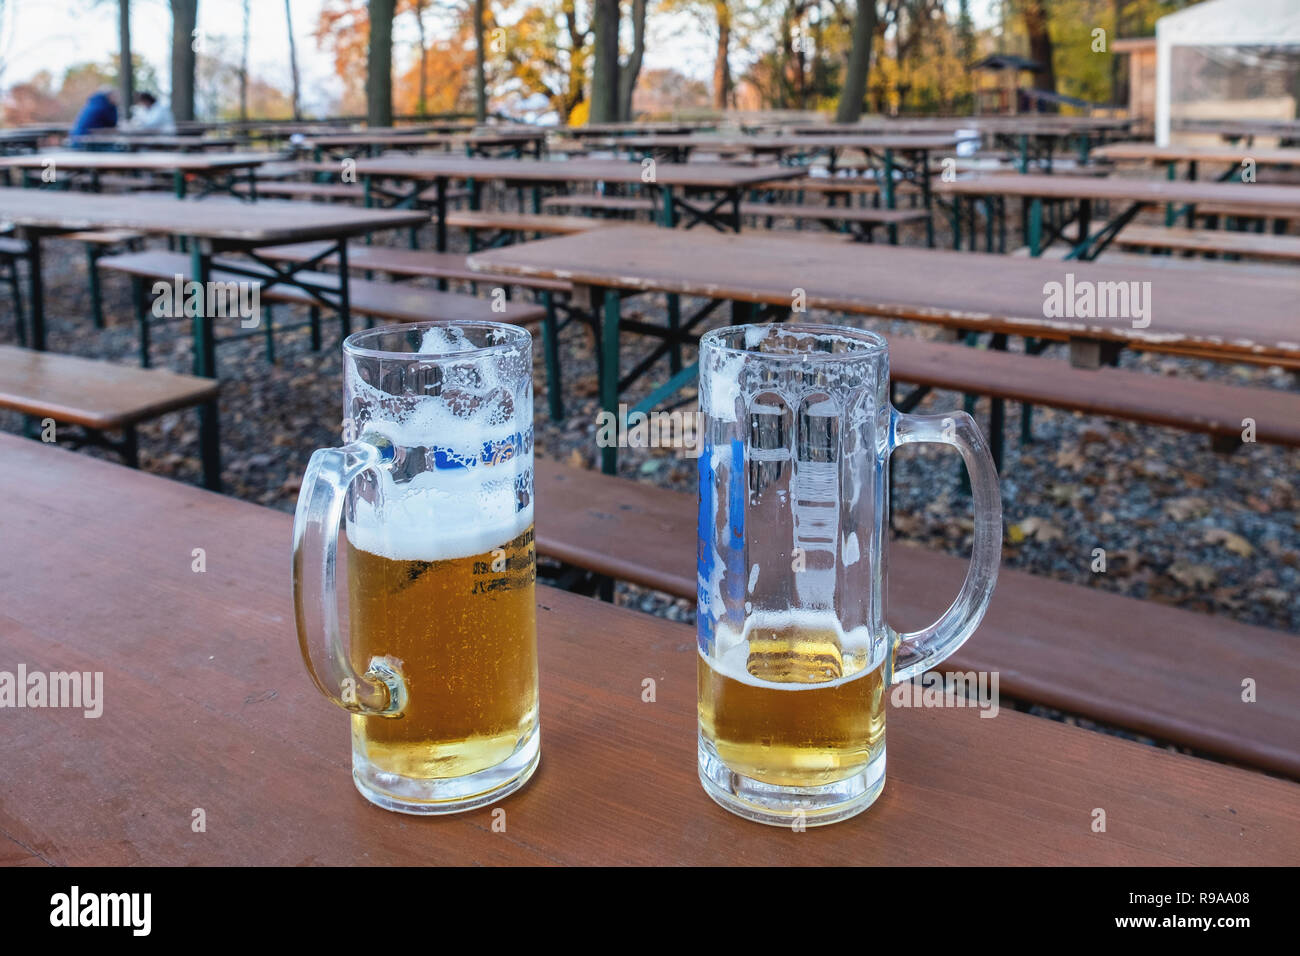 berli, Wannsee. Lorreta restaurant beer garden. Two beer glasses on table in Autumn. Empty tables - Stock Image